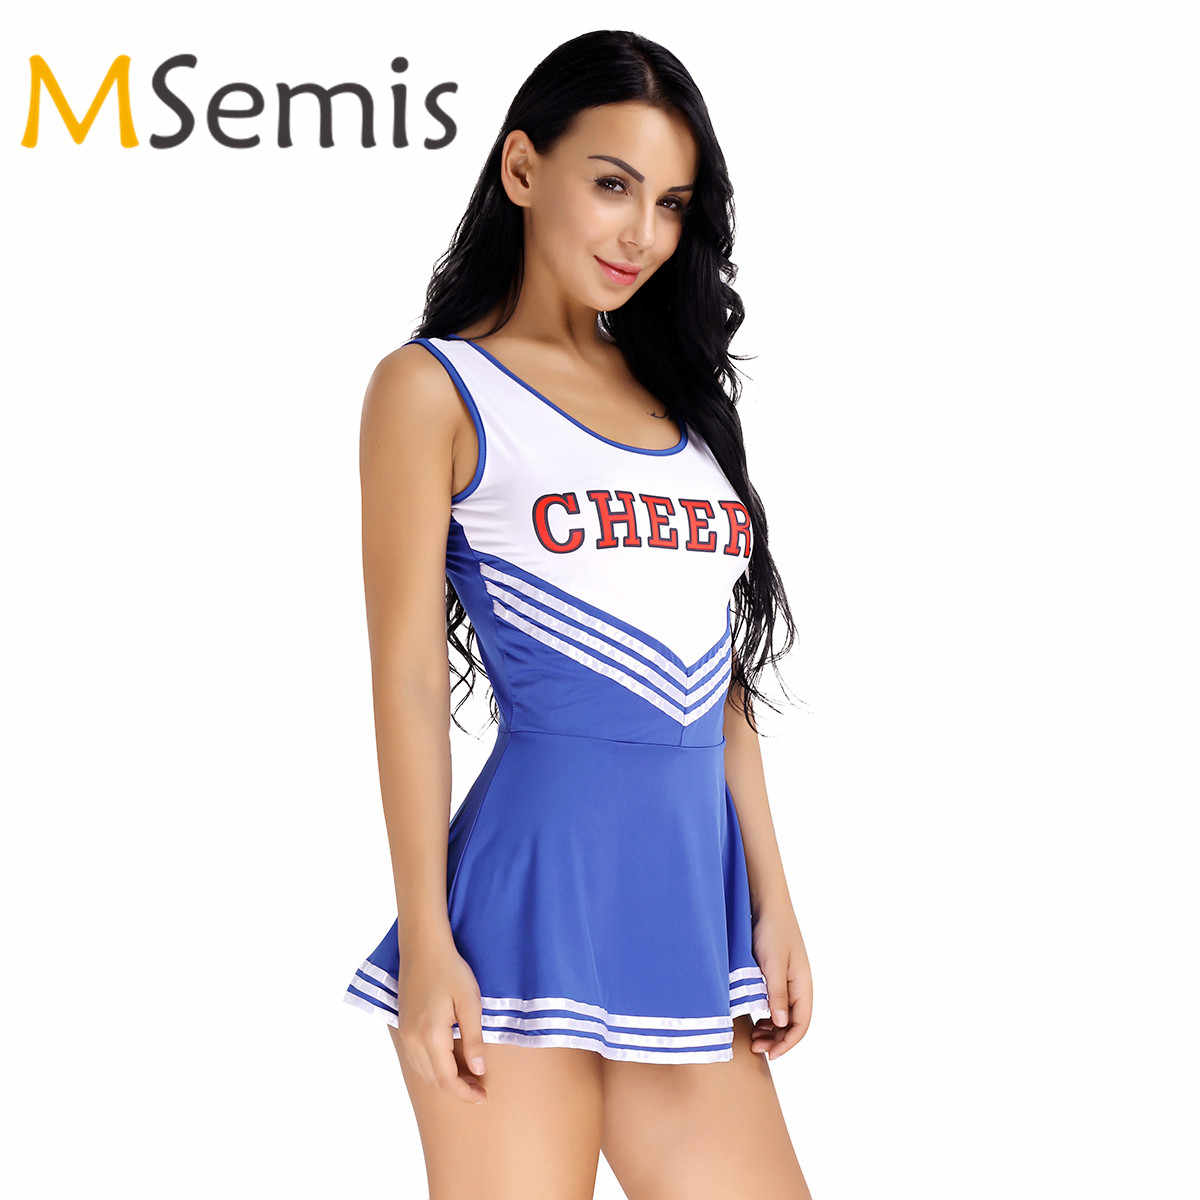 Frauen Cheerleader Kostüm Uniform Schule Mädchen Musical Phantasie Cheerleading Kleid Team Sport Cheerleading Sport Uniform Kleid